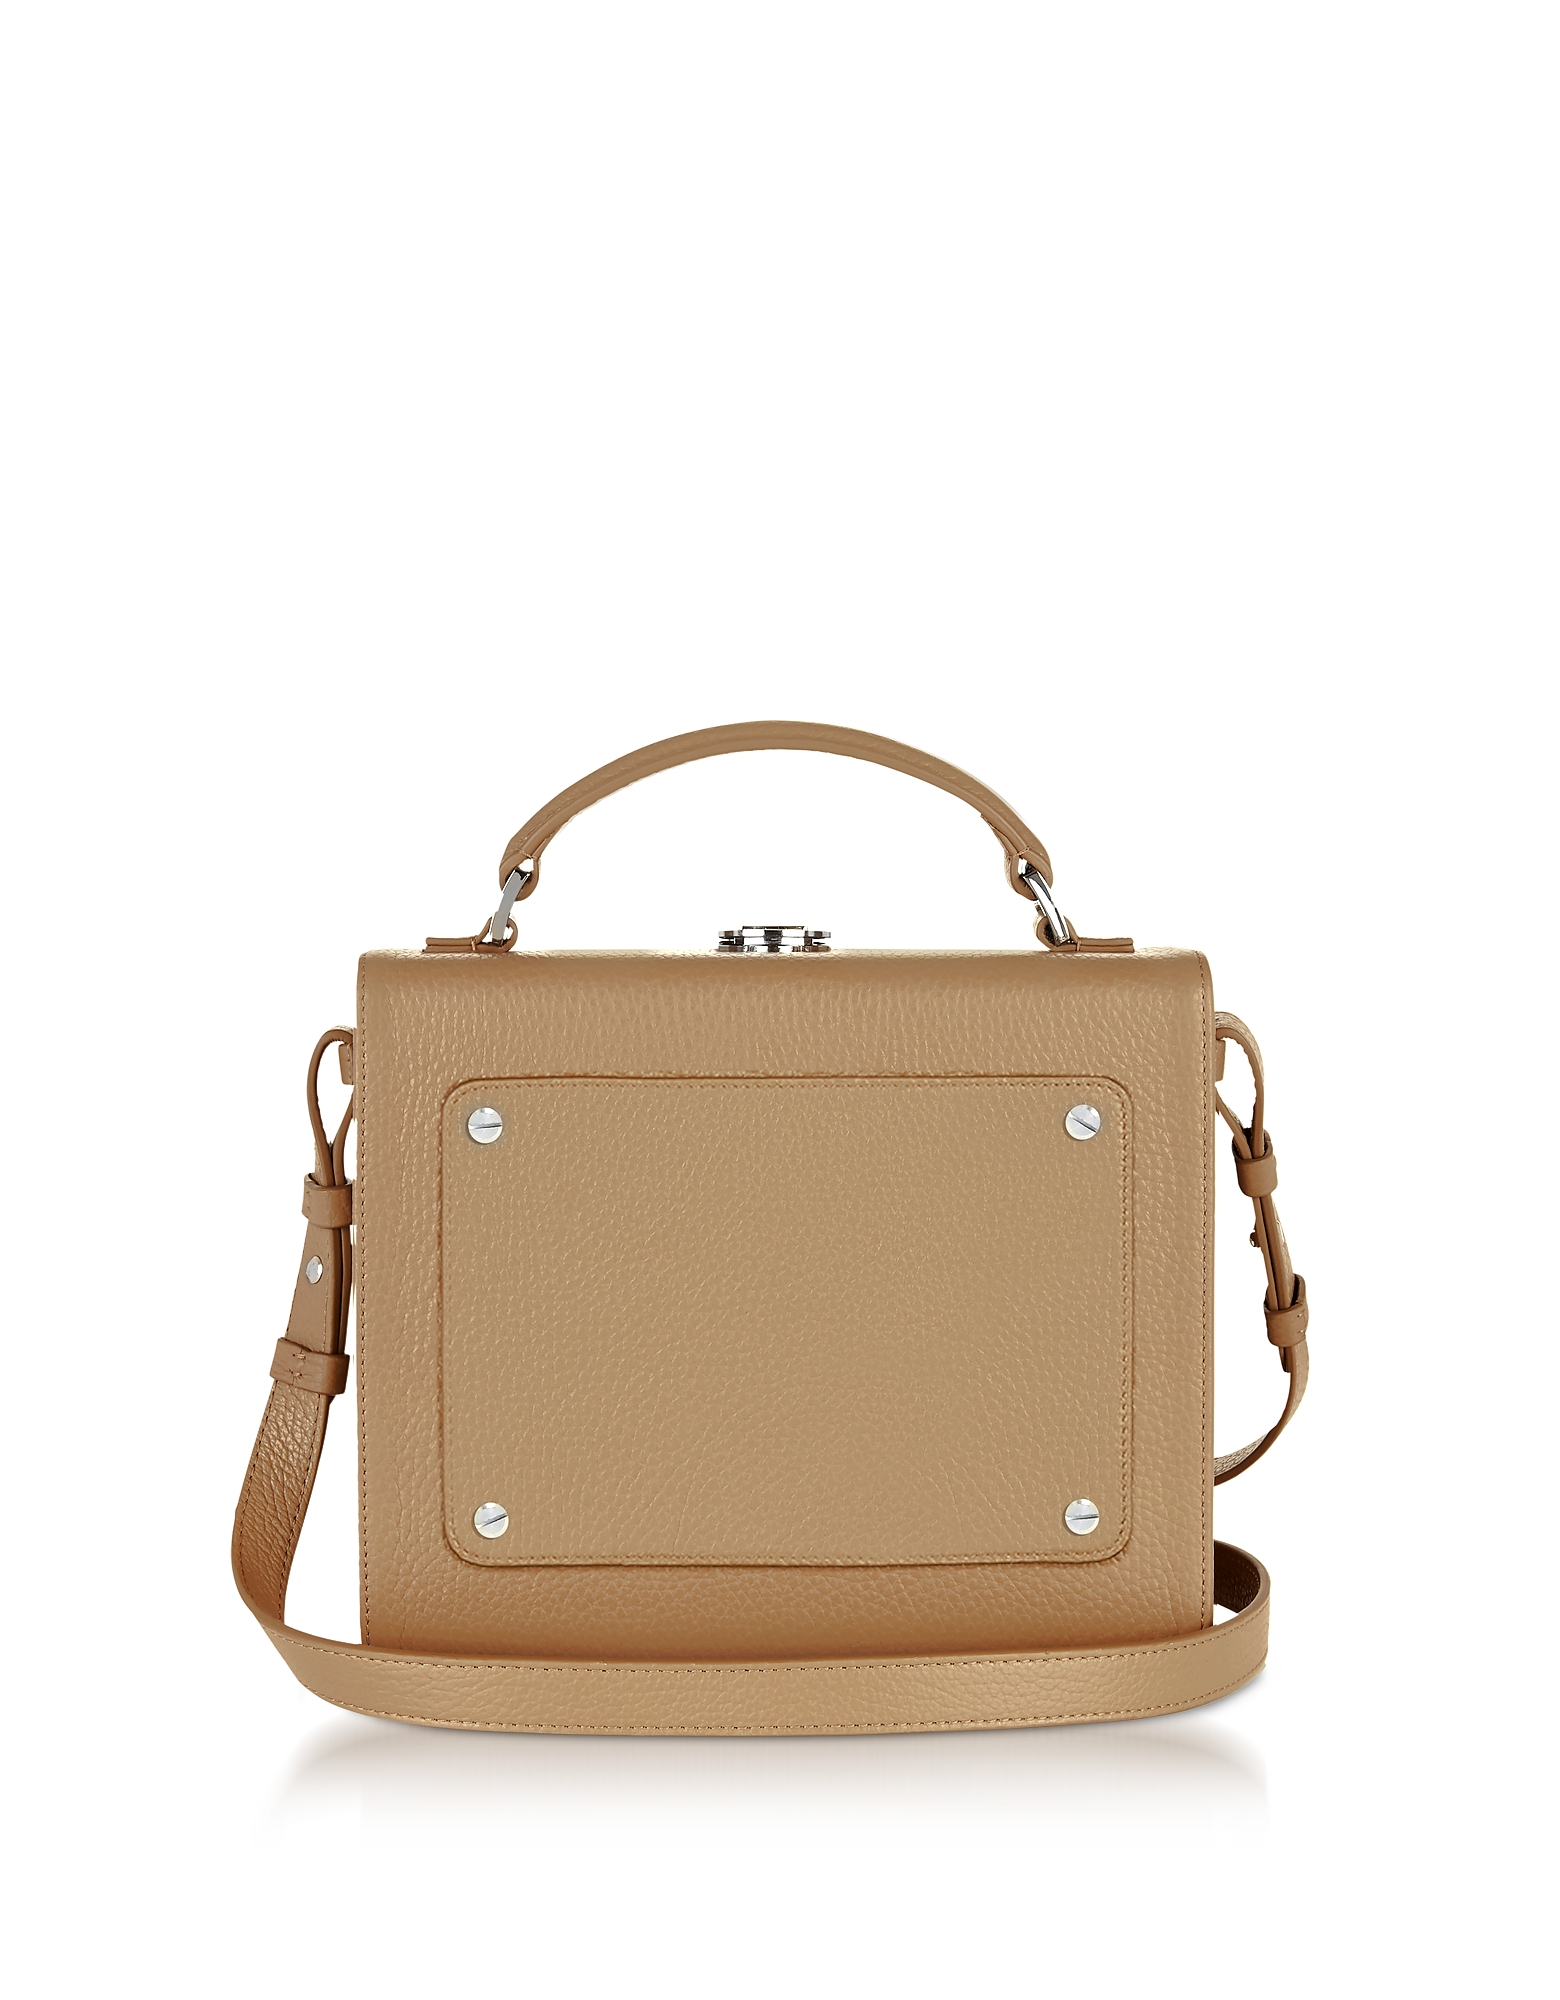 Meli Melo Handbags, Light Tan Leather Art Bag